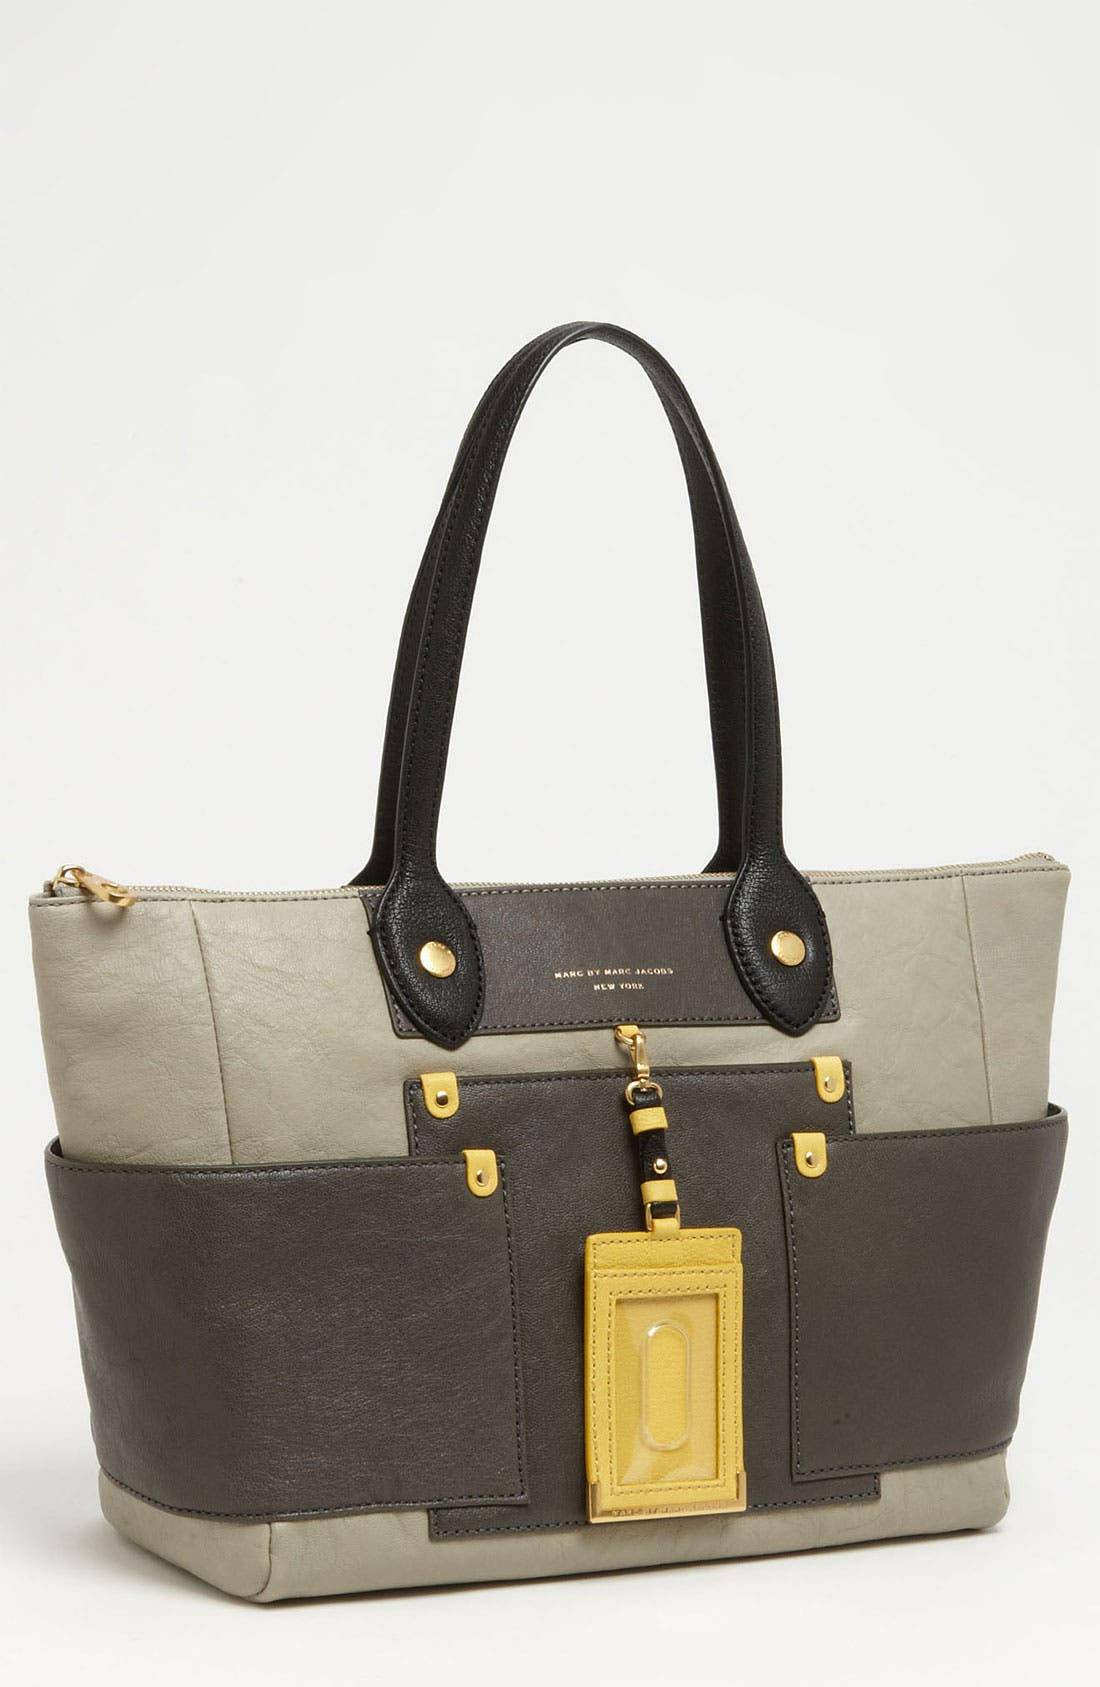 Alternate Image 1 Selected - MARC BY MARC JACOBS 'Preppy Colorblock' Leather Tote